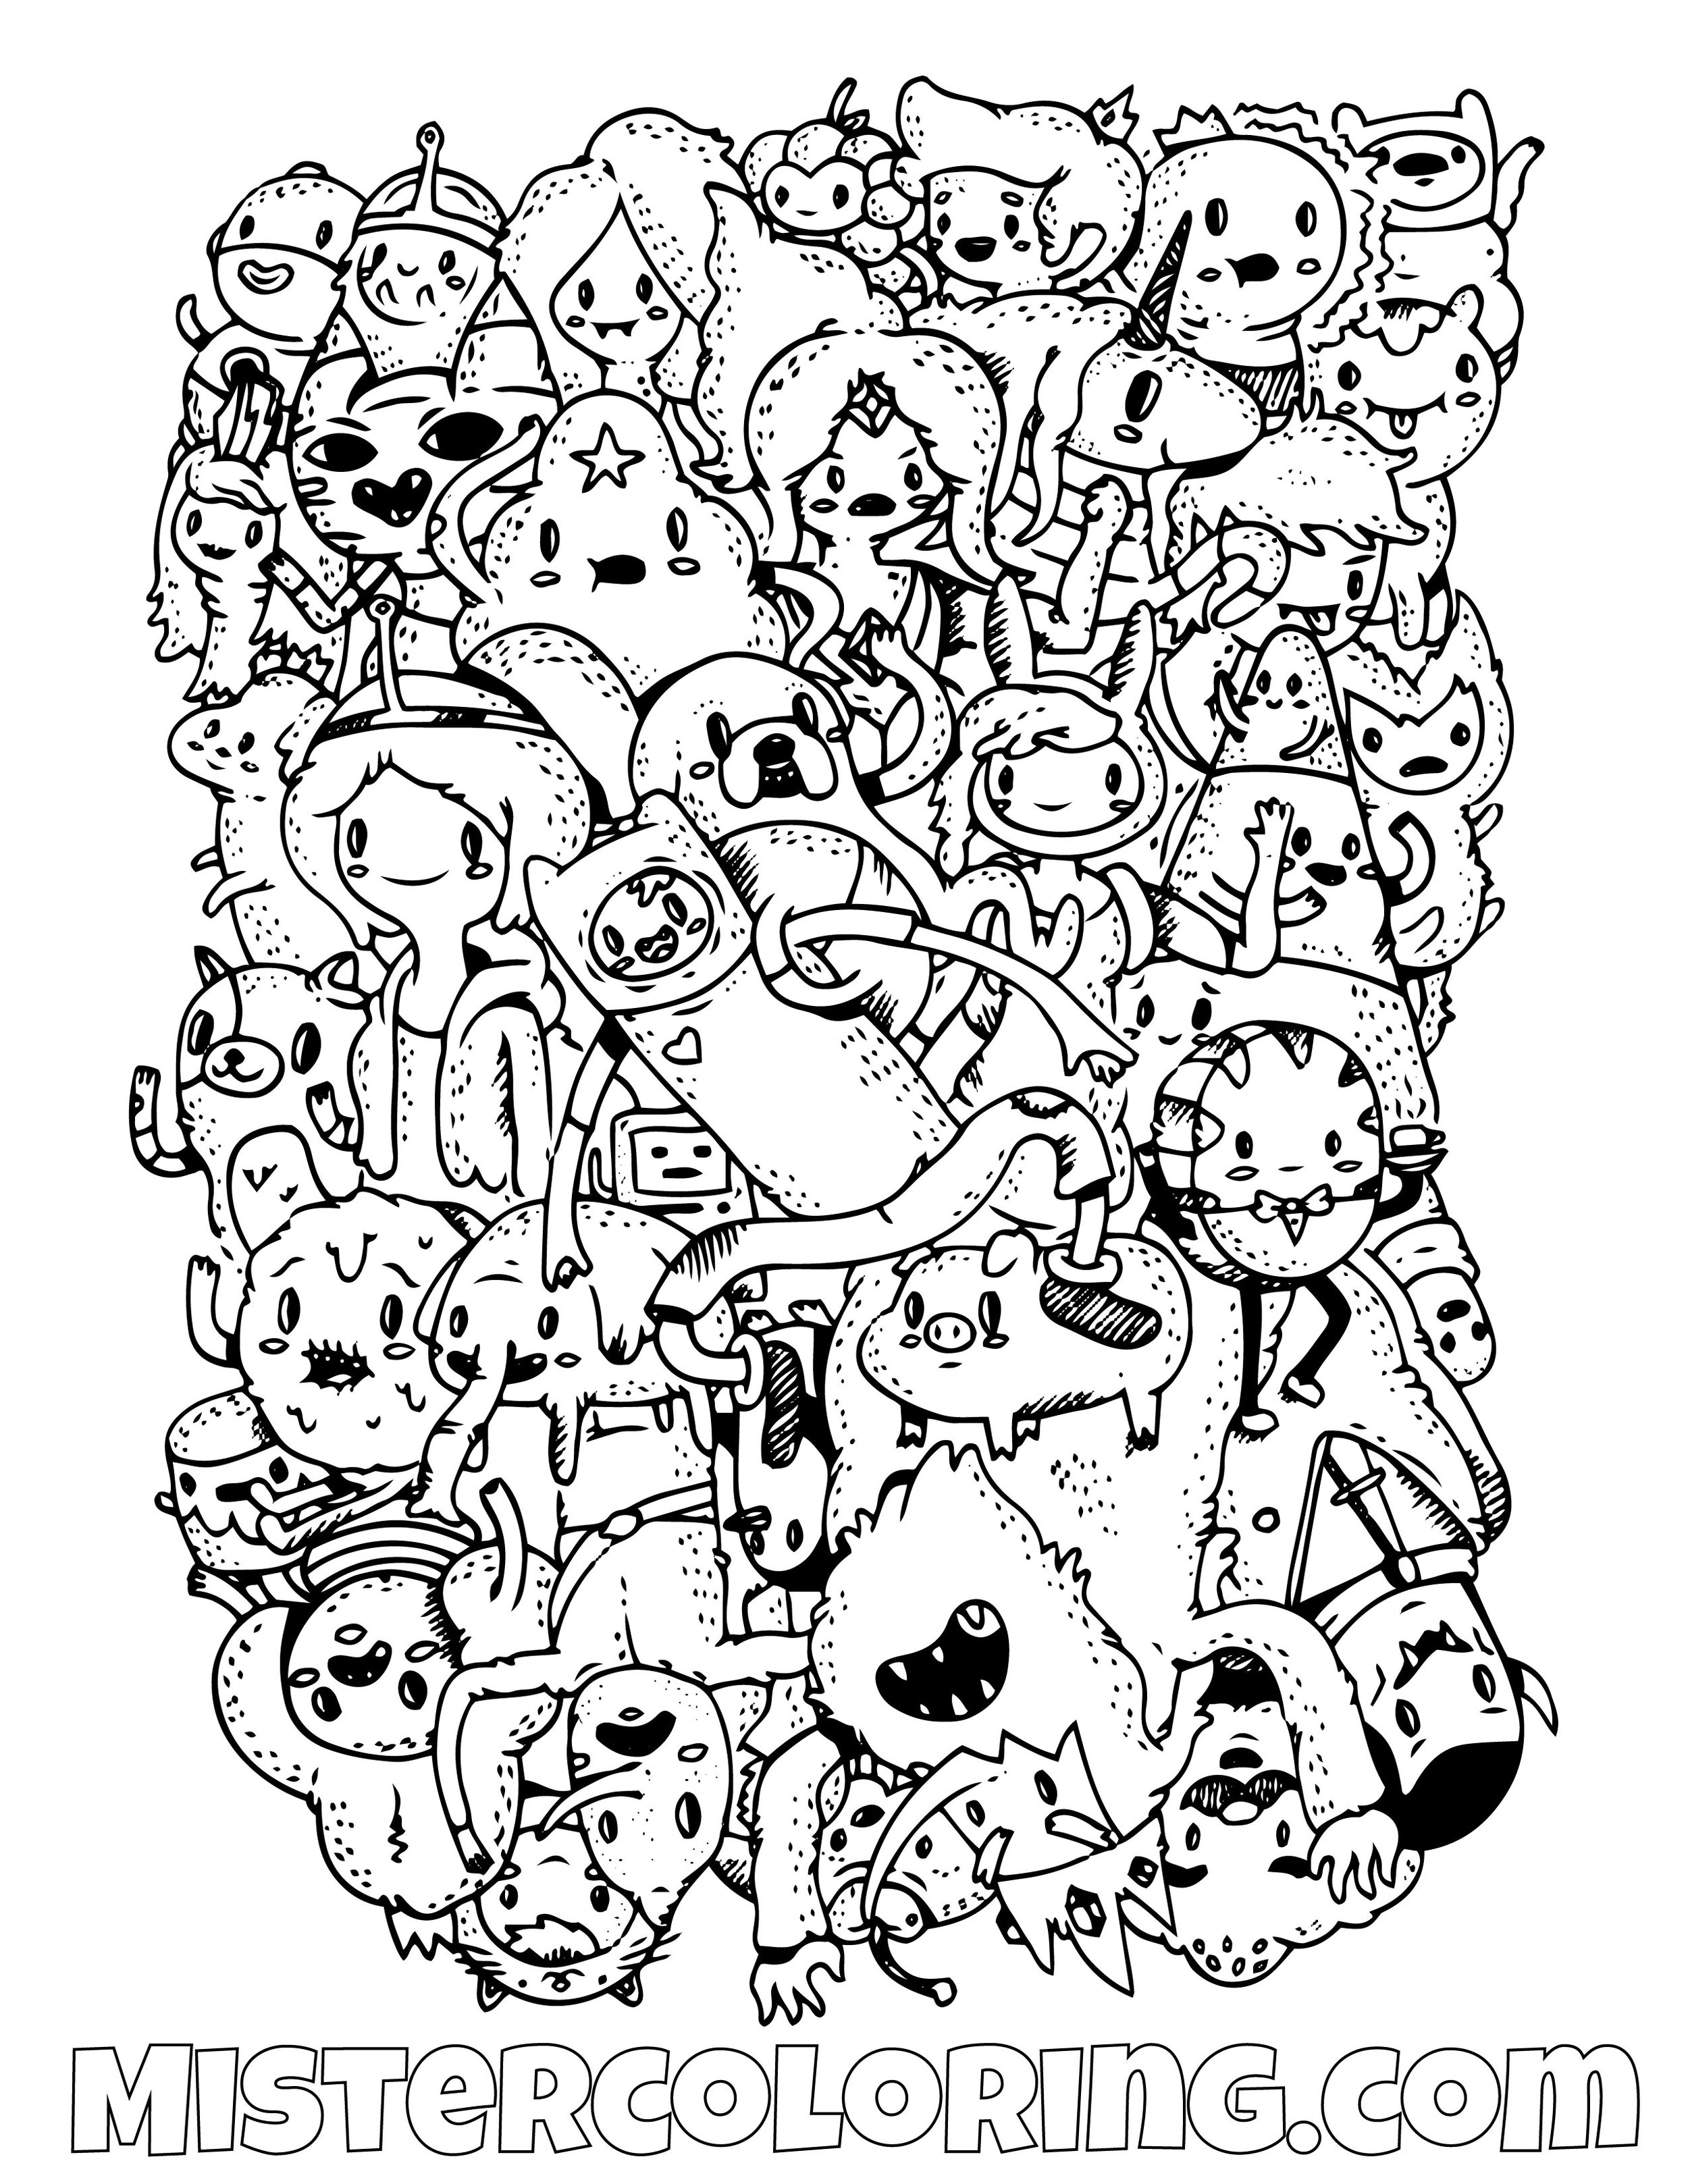 Printable Adventure Time S7456 Coloring Pages Printable | 1294x1000